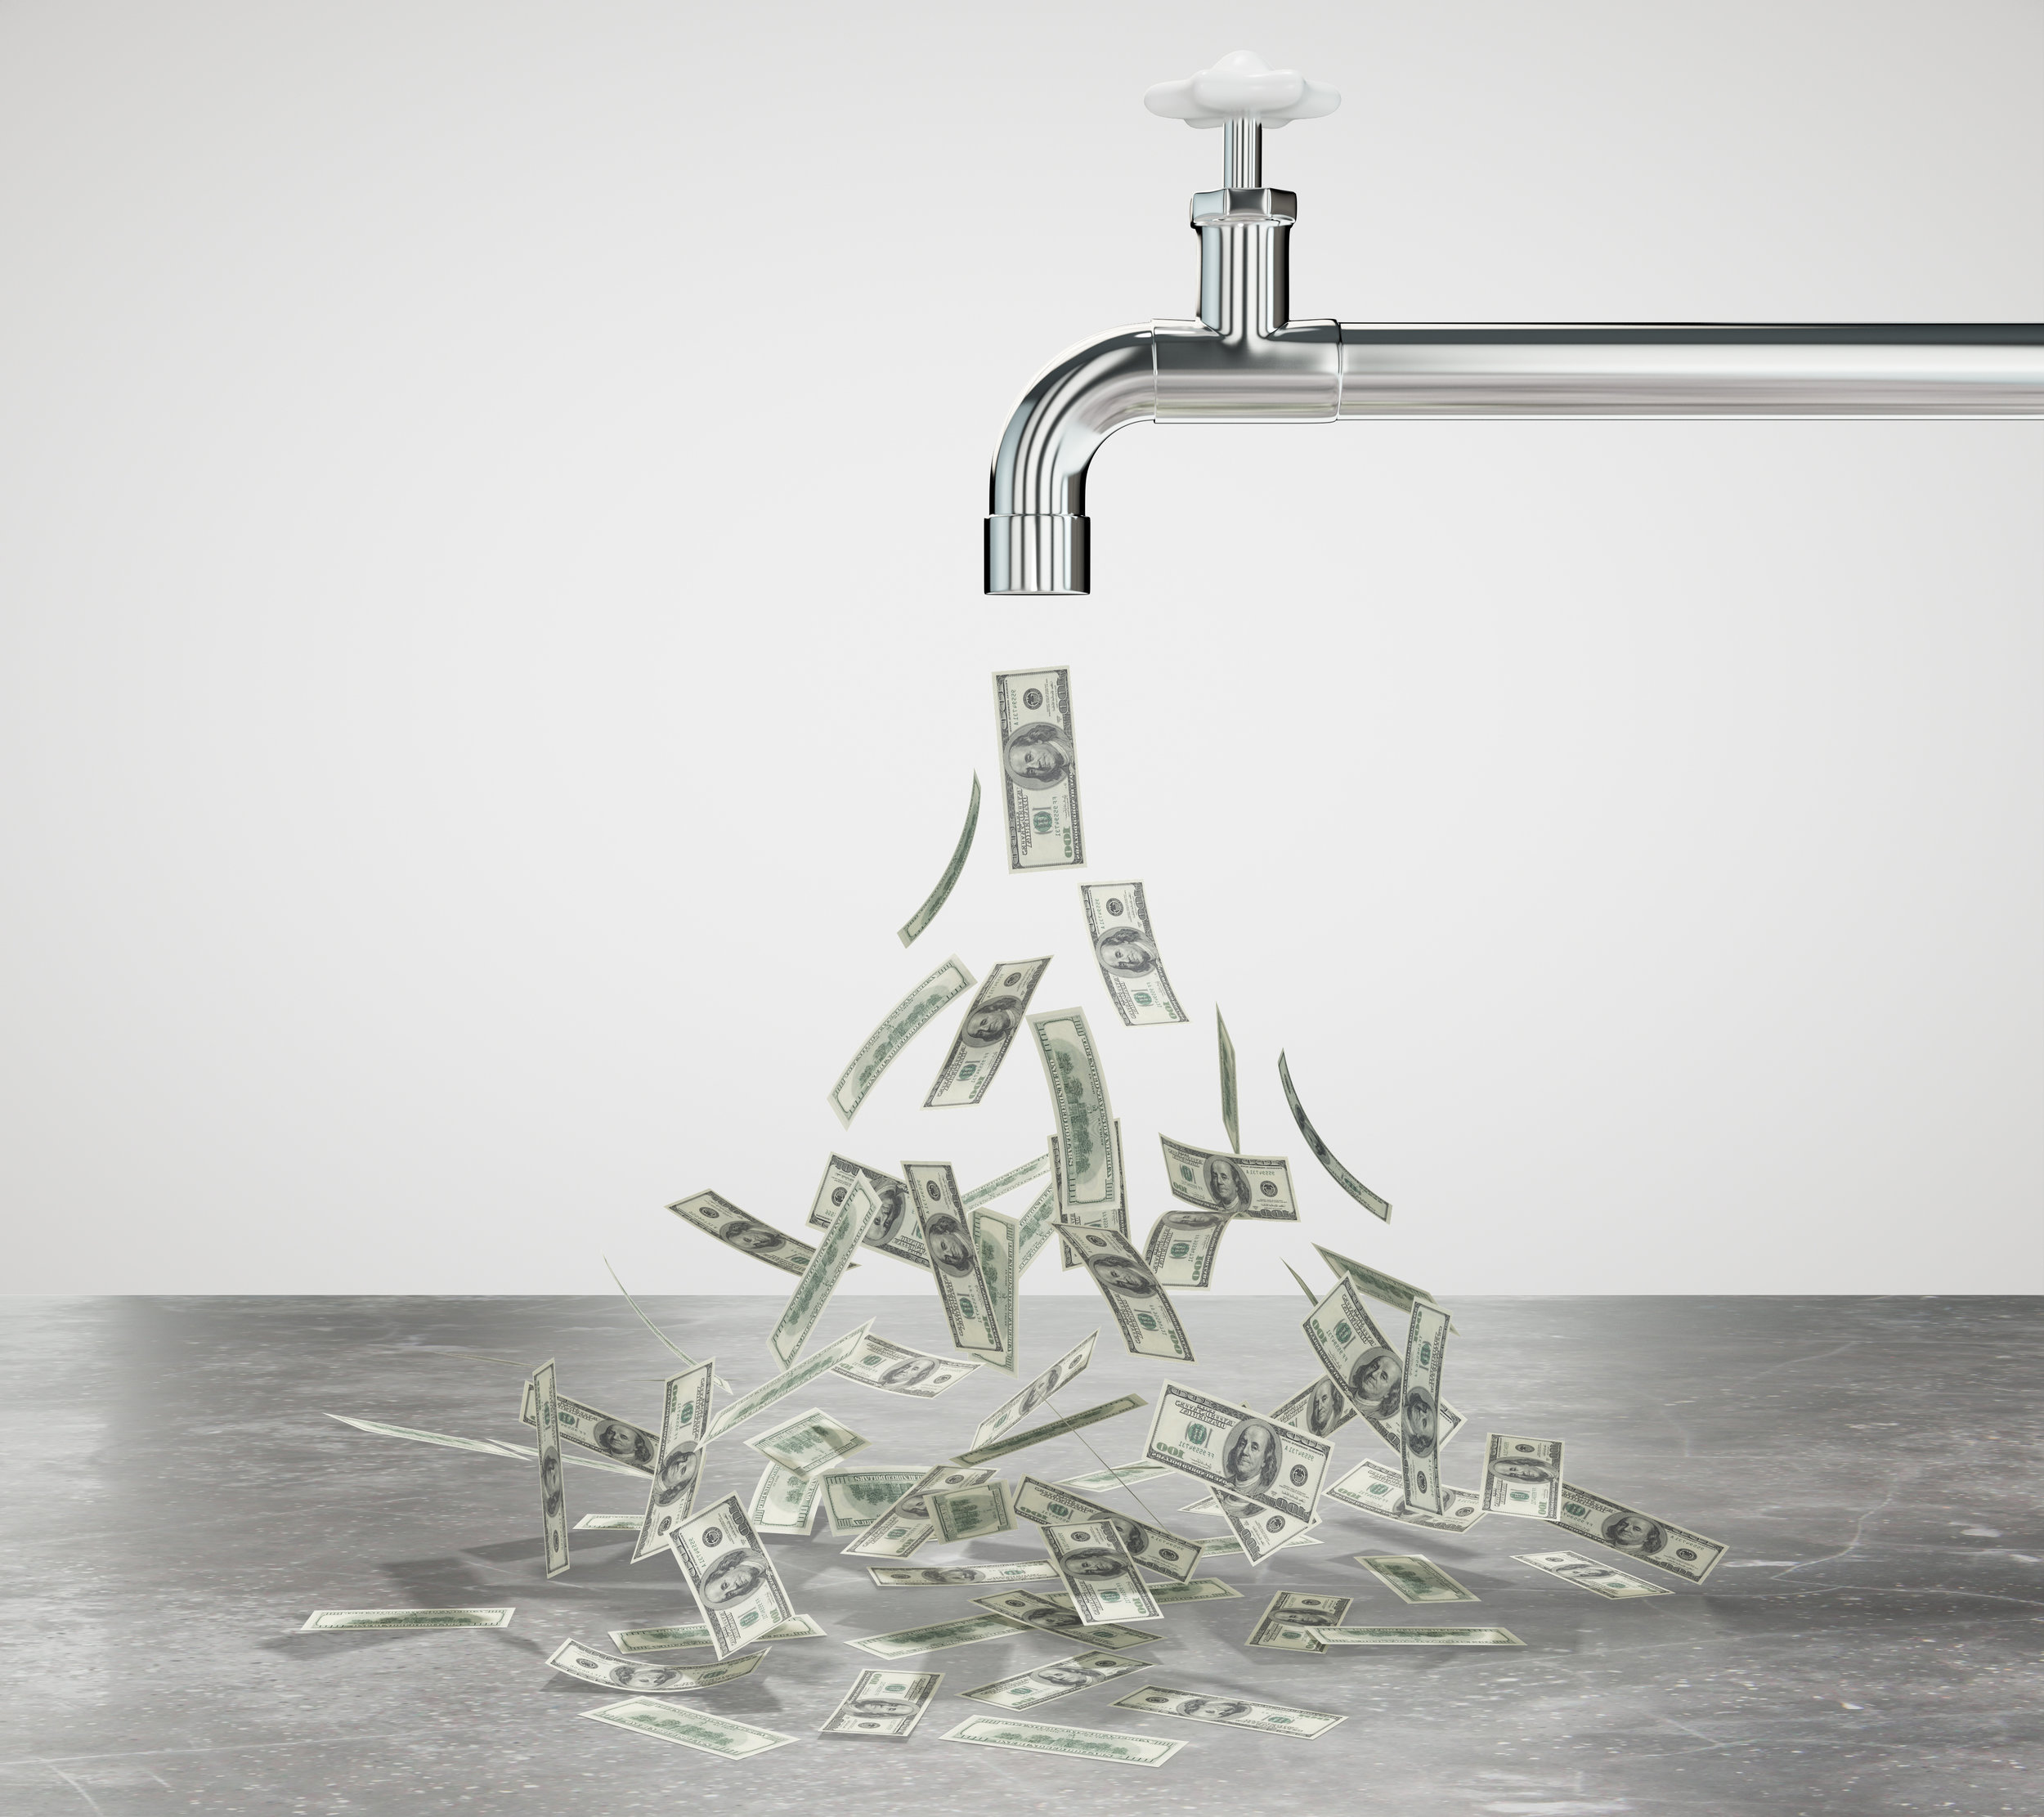 How Can I Improve Cash Flow In My Trades Business?